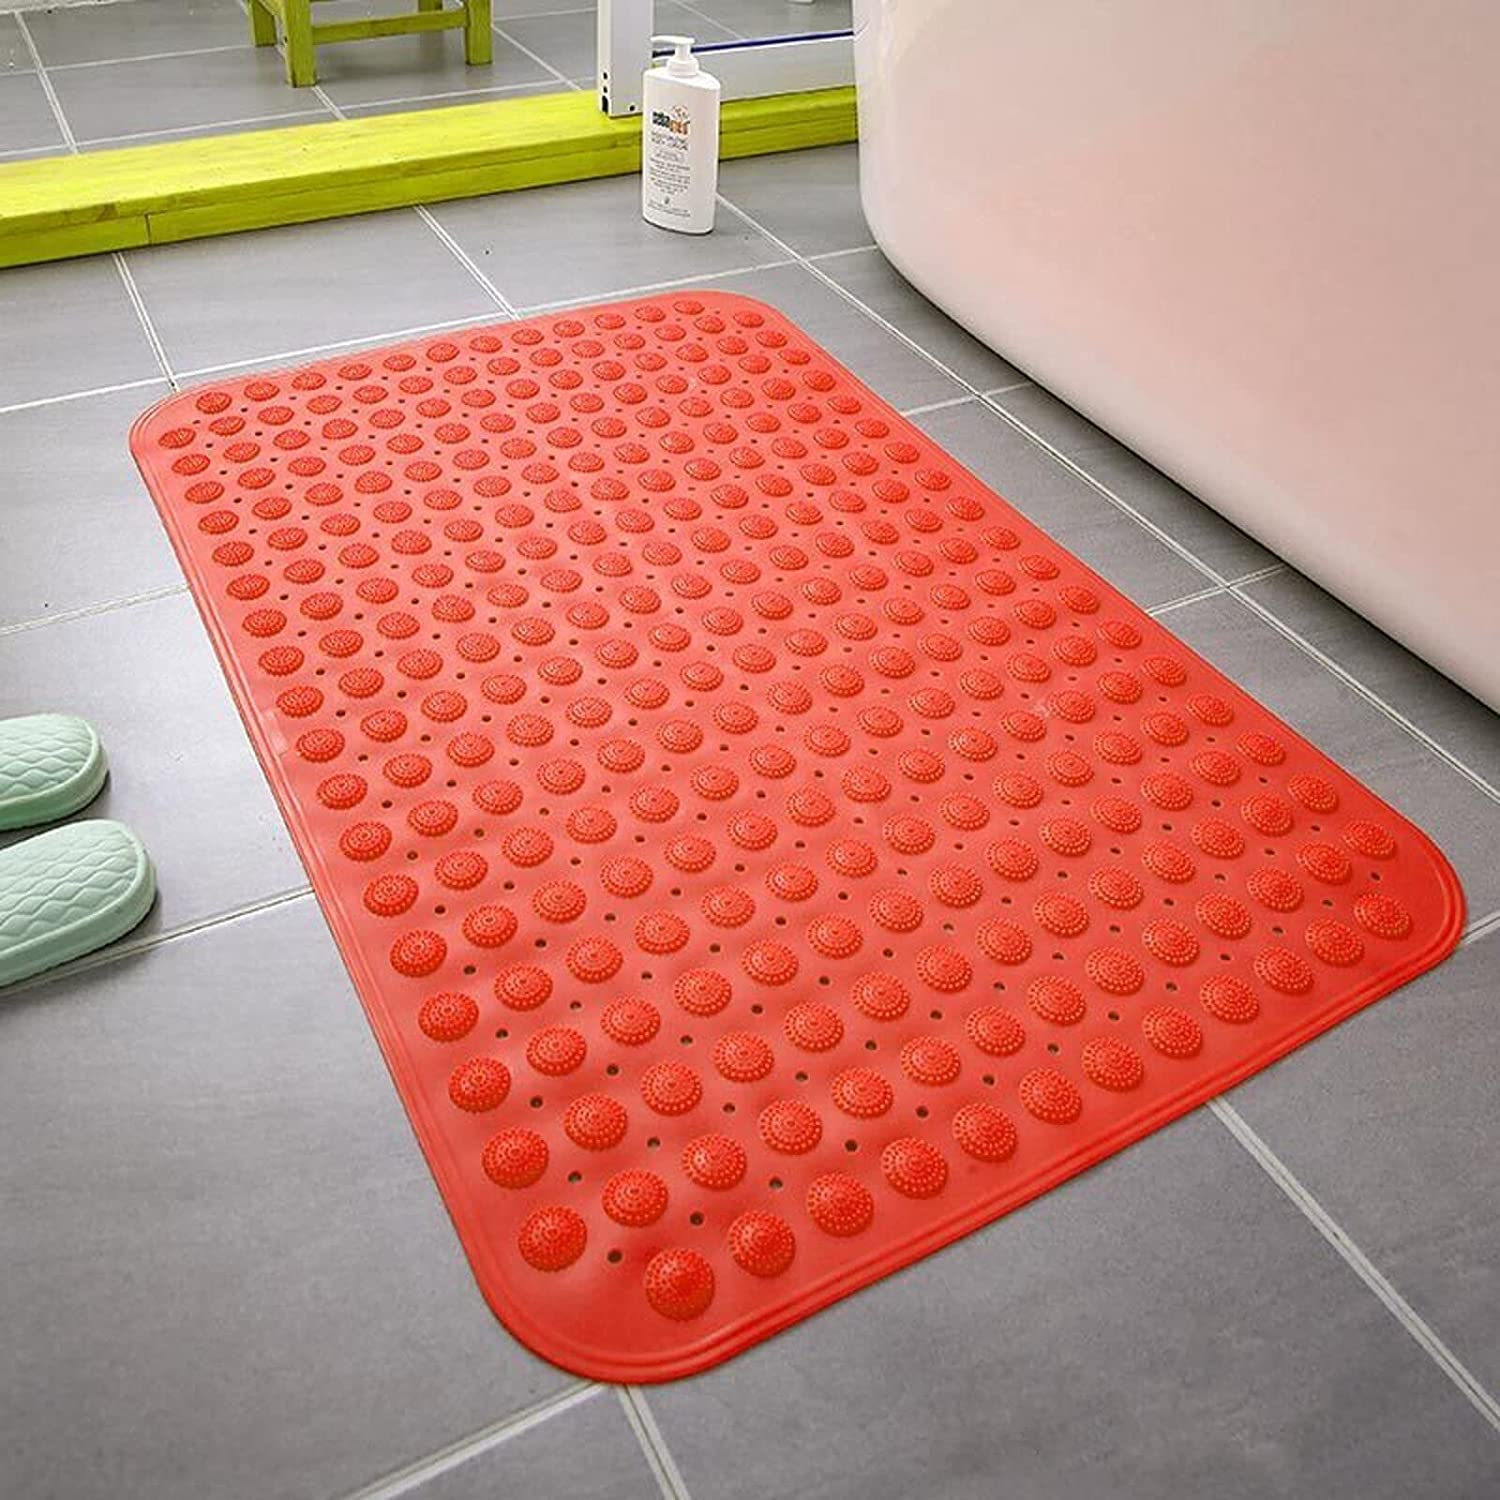 QSCV Non Slip with Suction Super special price Cups Online limited product Hole Mats Bathtub Drain Bath and